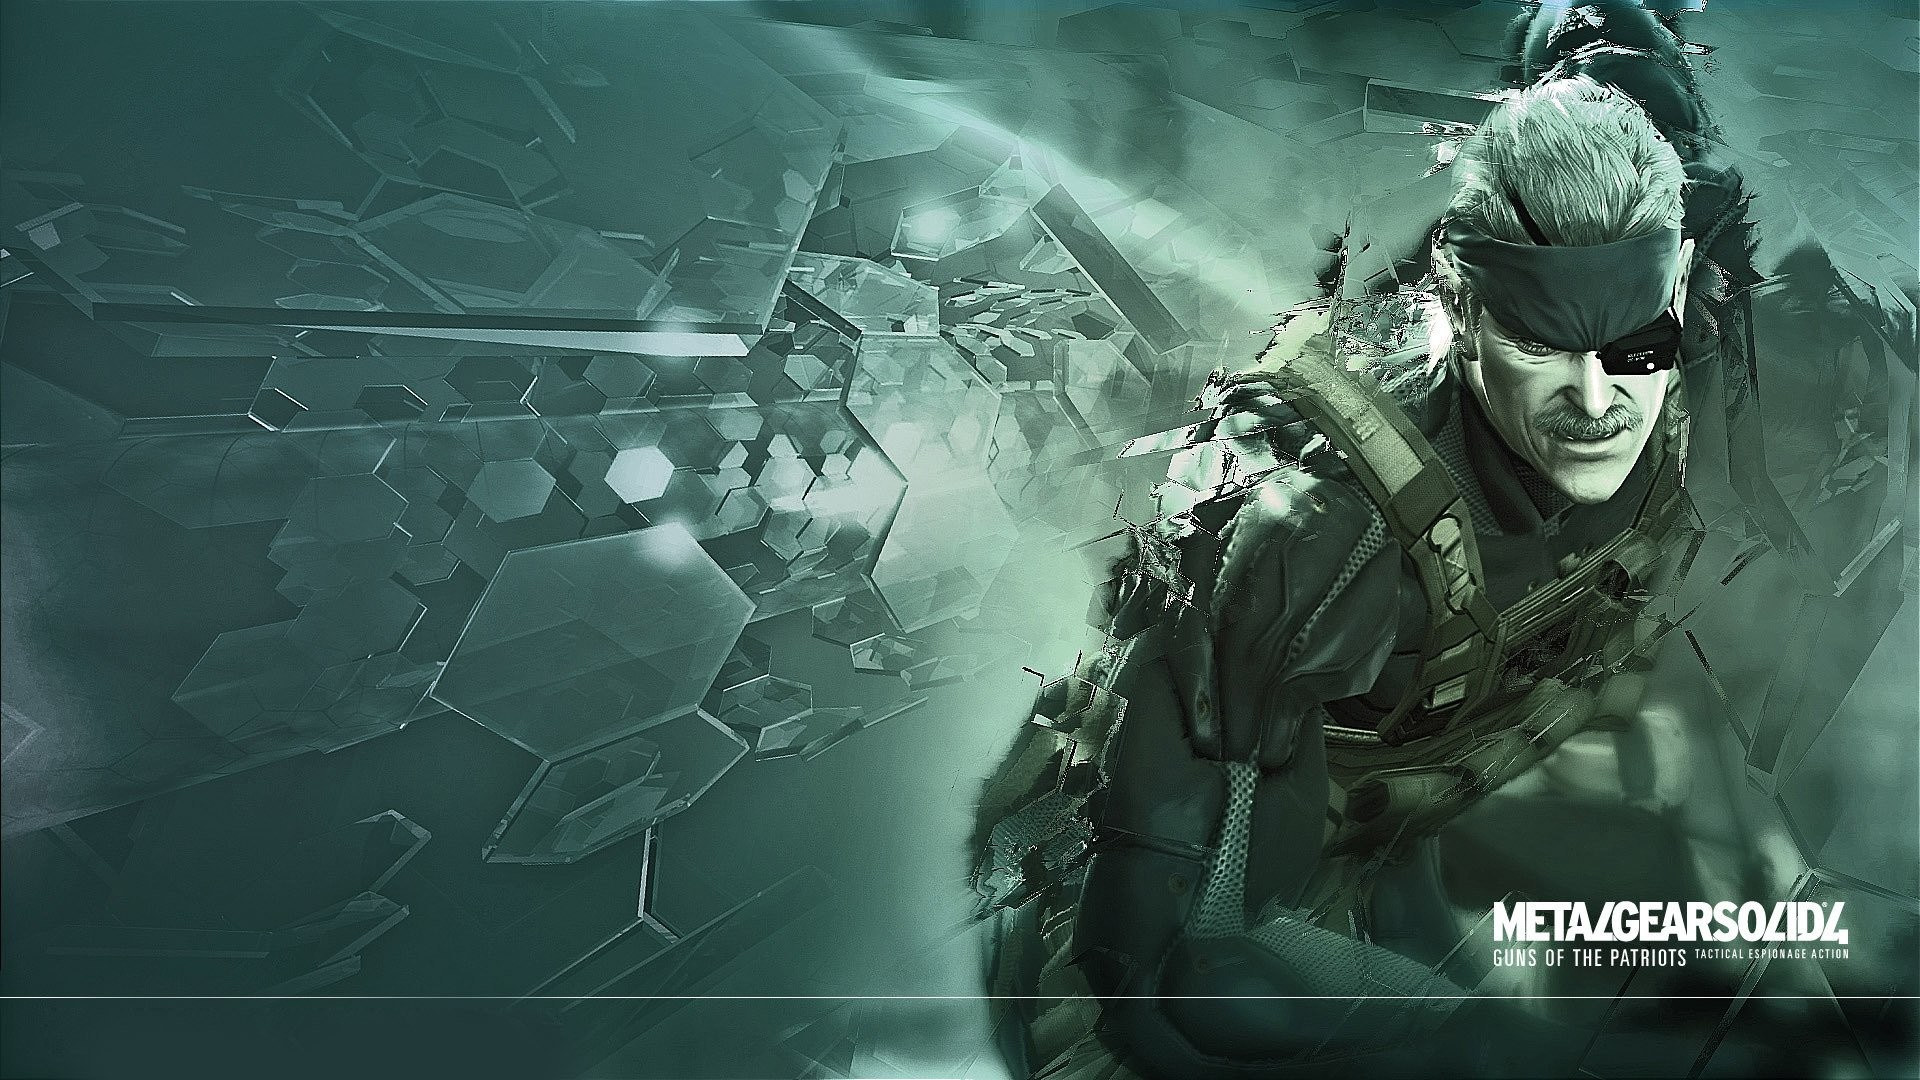 Metal Gear Solid 4 Wallpaper Wallpapertag